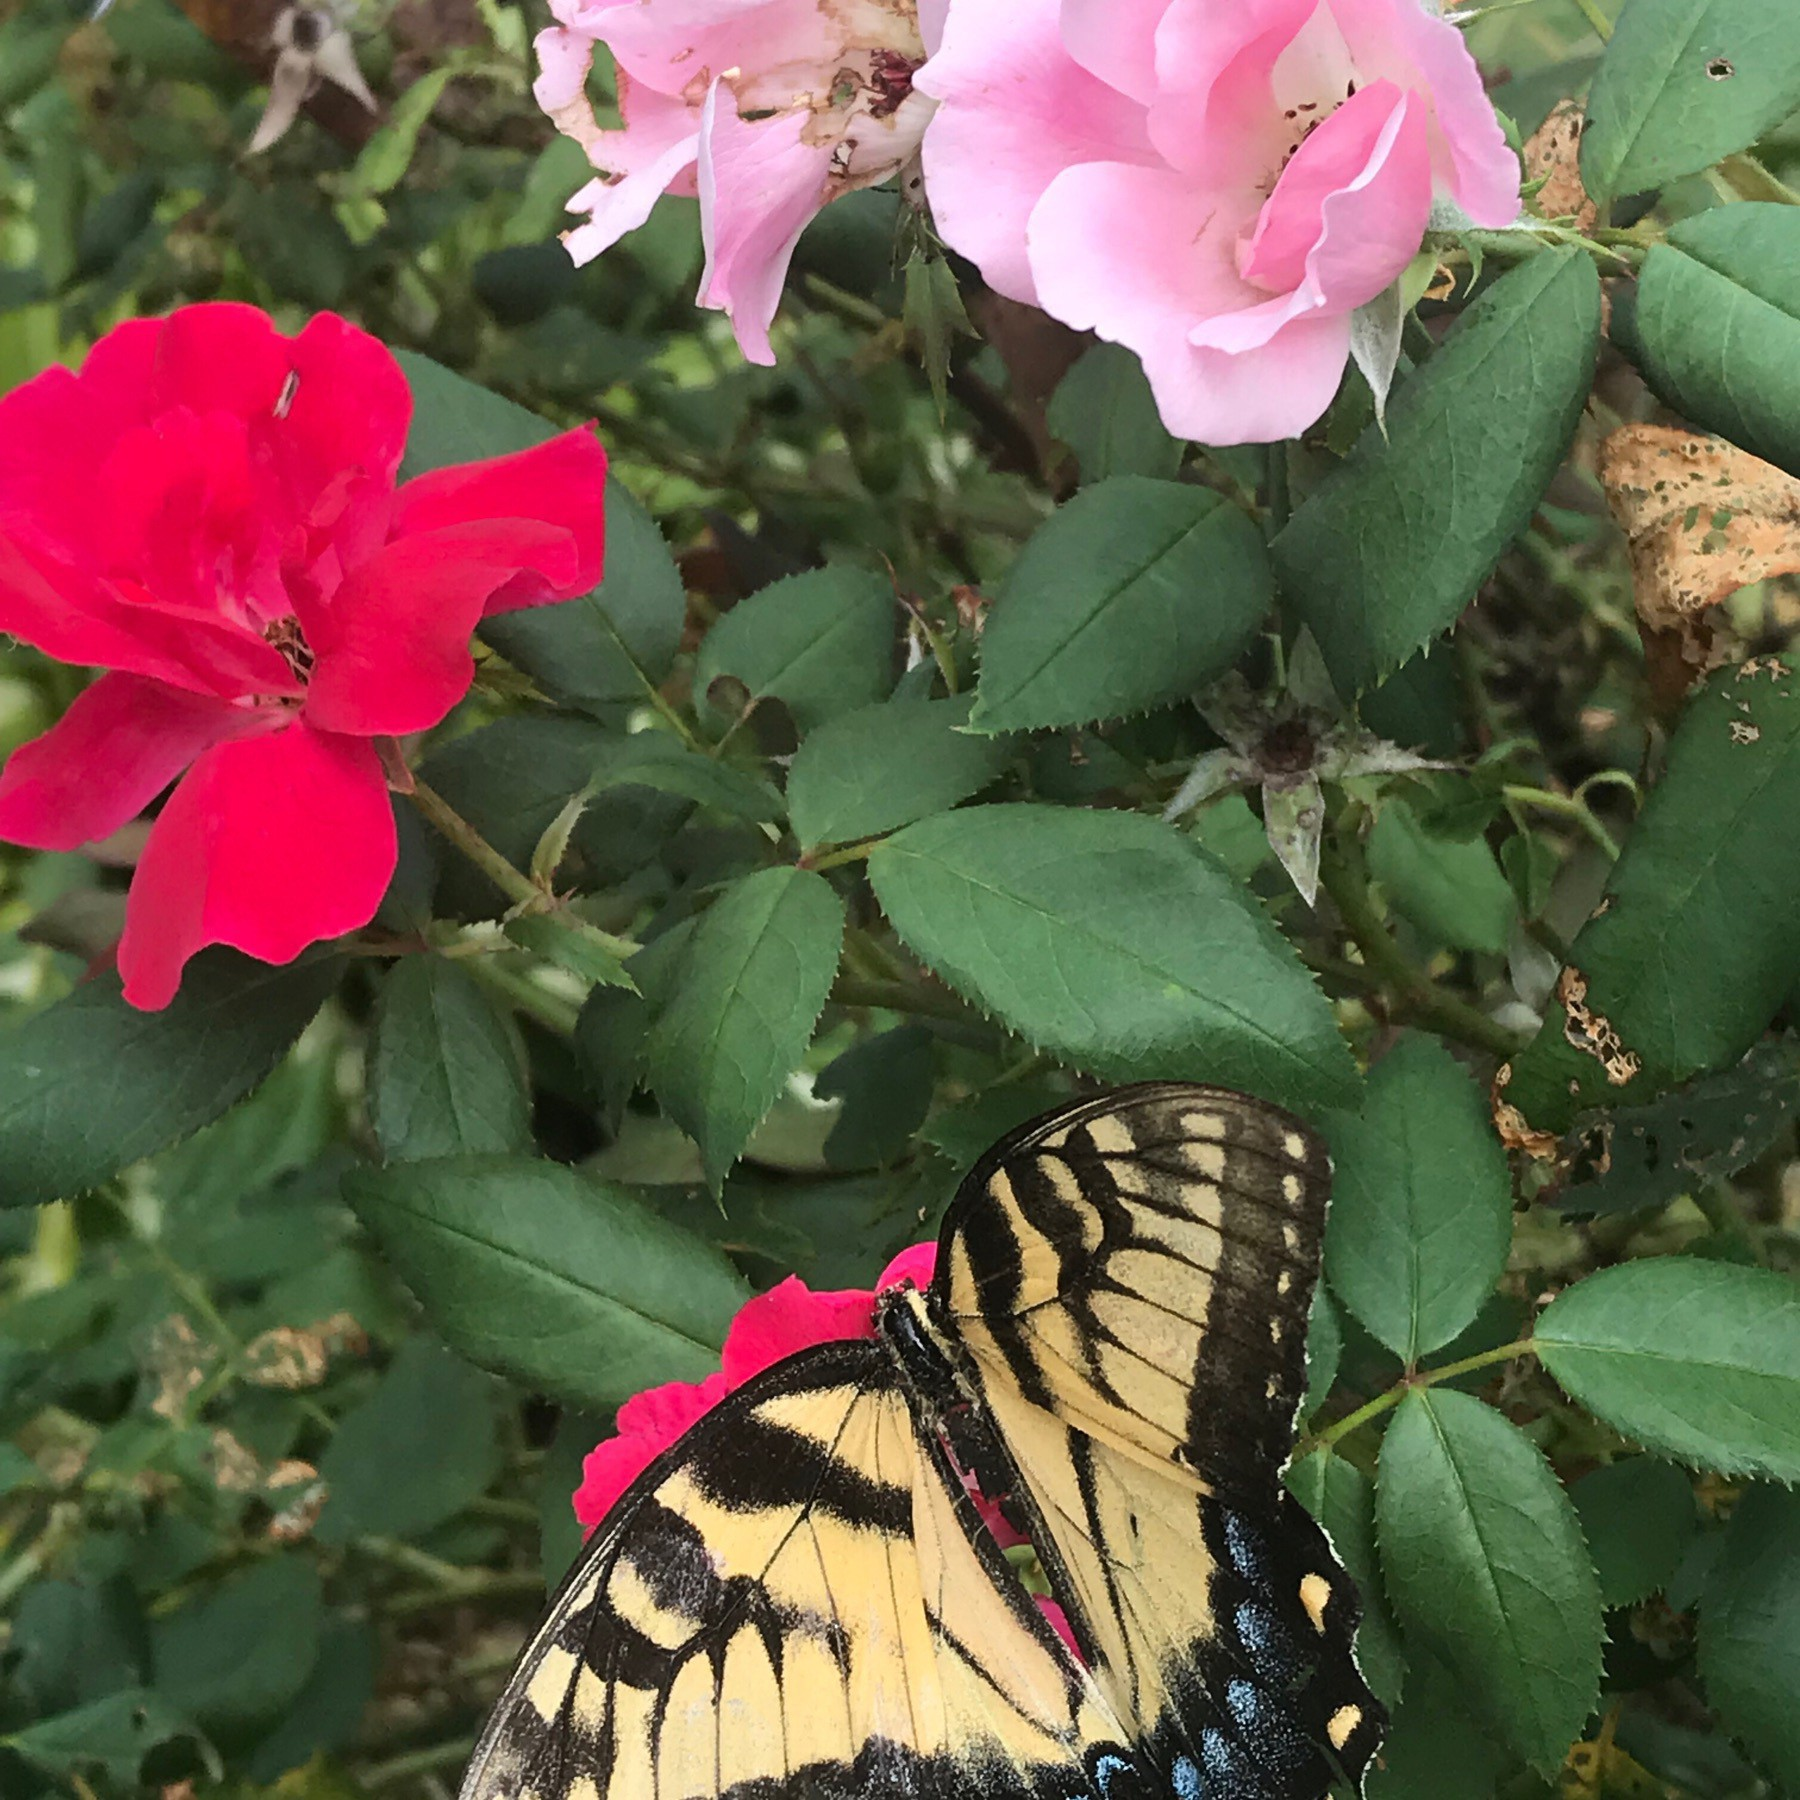 'Fluttered Bye' staged to contrast yellow & black wings with blue spots against white, pink, and red roses